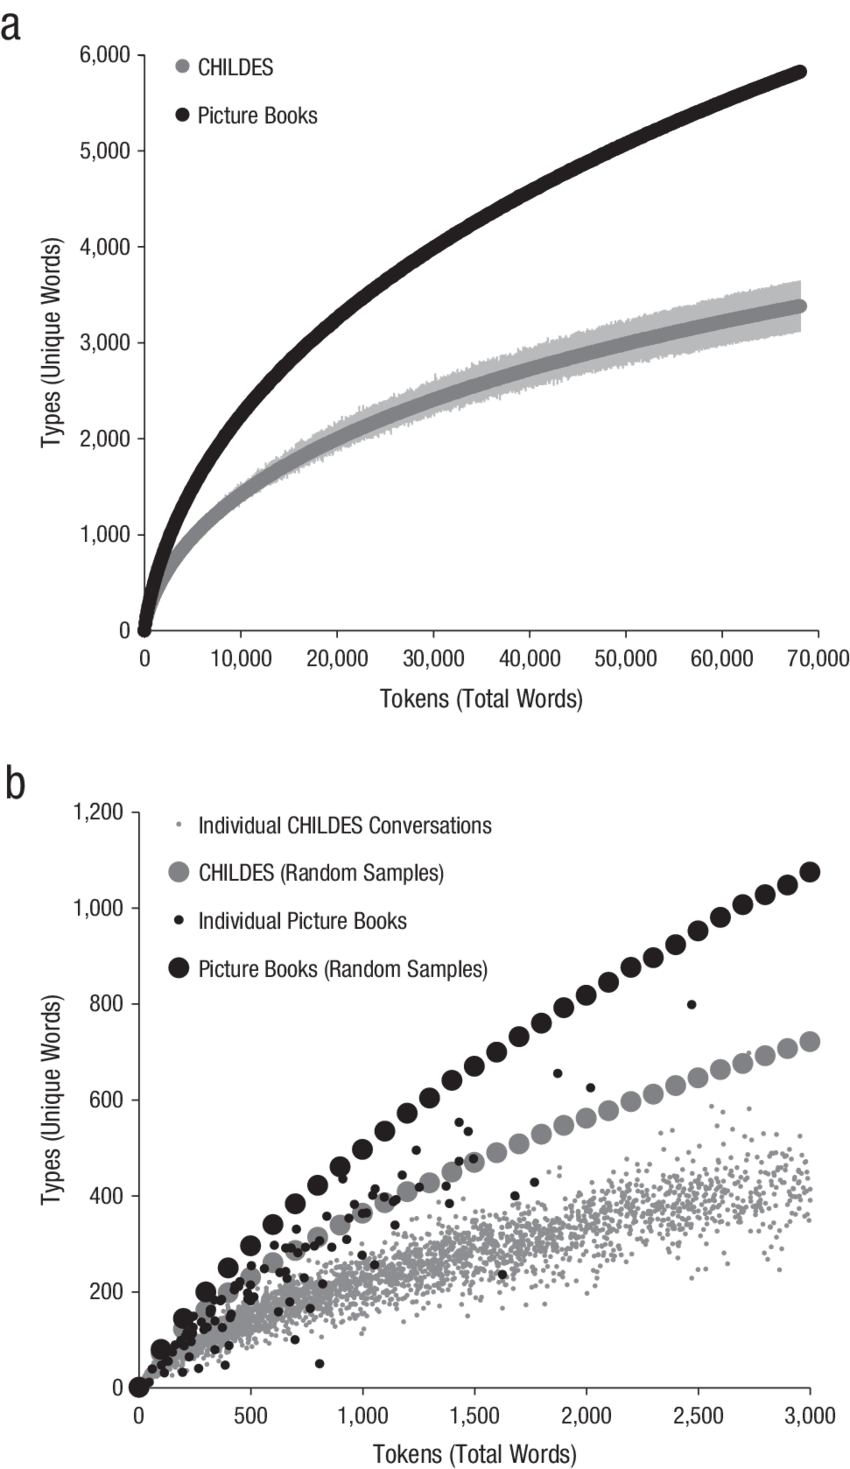 Results. The graph in (a) shows the mean number of unique